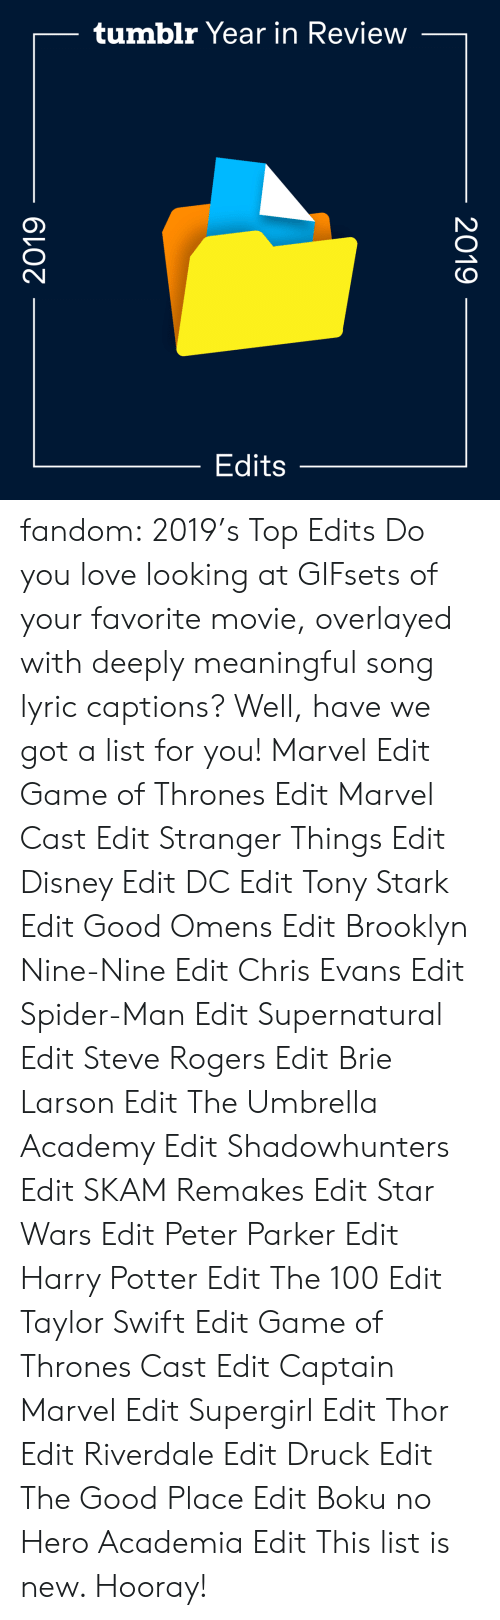 Meaningful: tumblr Year in Review  Edits  2019  2019 fandom:  2019's Top Edits  Do you love looking at GIFsets of your favorite movie, overlayed with deeply meaningful song lyric captions? Well, have we got a list for you!  Marvel Edit  Game of Thrones Edit  Marvel Cast Edit  Stranger Things Edit  Disney Edit  DC Edit  Tony Stark Edit  Good Omens Edit  Brooklyn Nine-Nine Edit  Chris Evans Edit  Spider-Man Edit  Supernatural Edit  Steve Rogers Edit  Brie Larson Edit  The Umbrella Academy Edit  Shadowhunters Edit  SKAM Remakes Edit  Star Wars Edit  Peter Parker Edit  Harry Potter Edit  The 100 Edit  Taylor Swift Edit  Game of Thrones Cast Edit  Captain Marvel Edit  Supergirl Edit  Thor Edit  Riverdale Edit  Druck Edit  The Good Place Edit  Boku no Hero Academia Edit This list is new. Hooray!